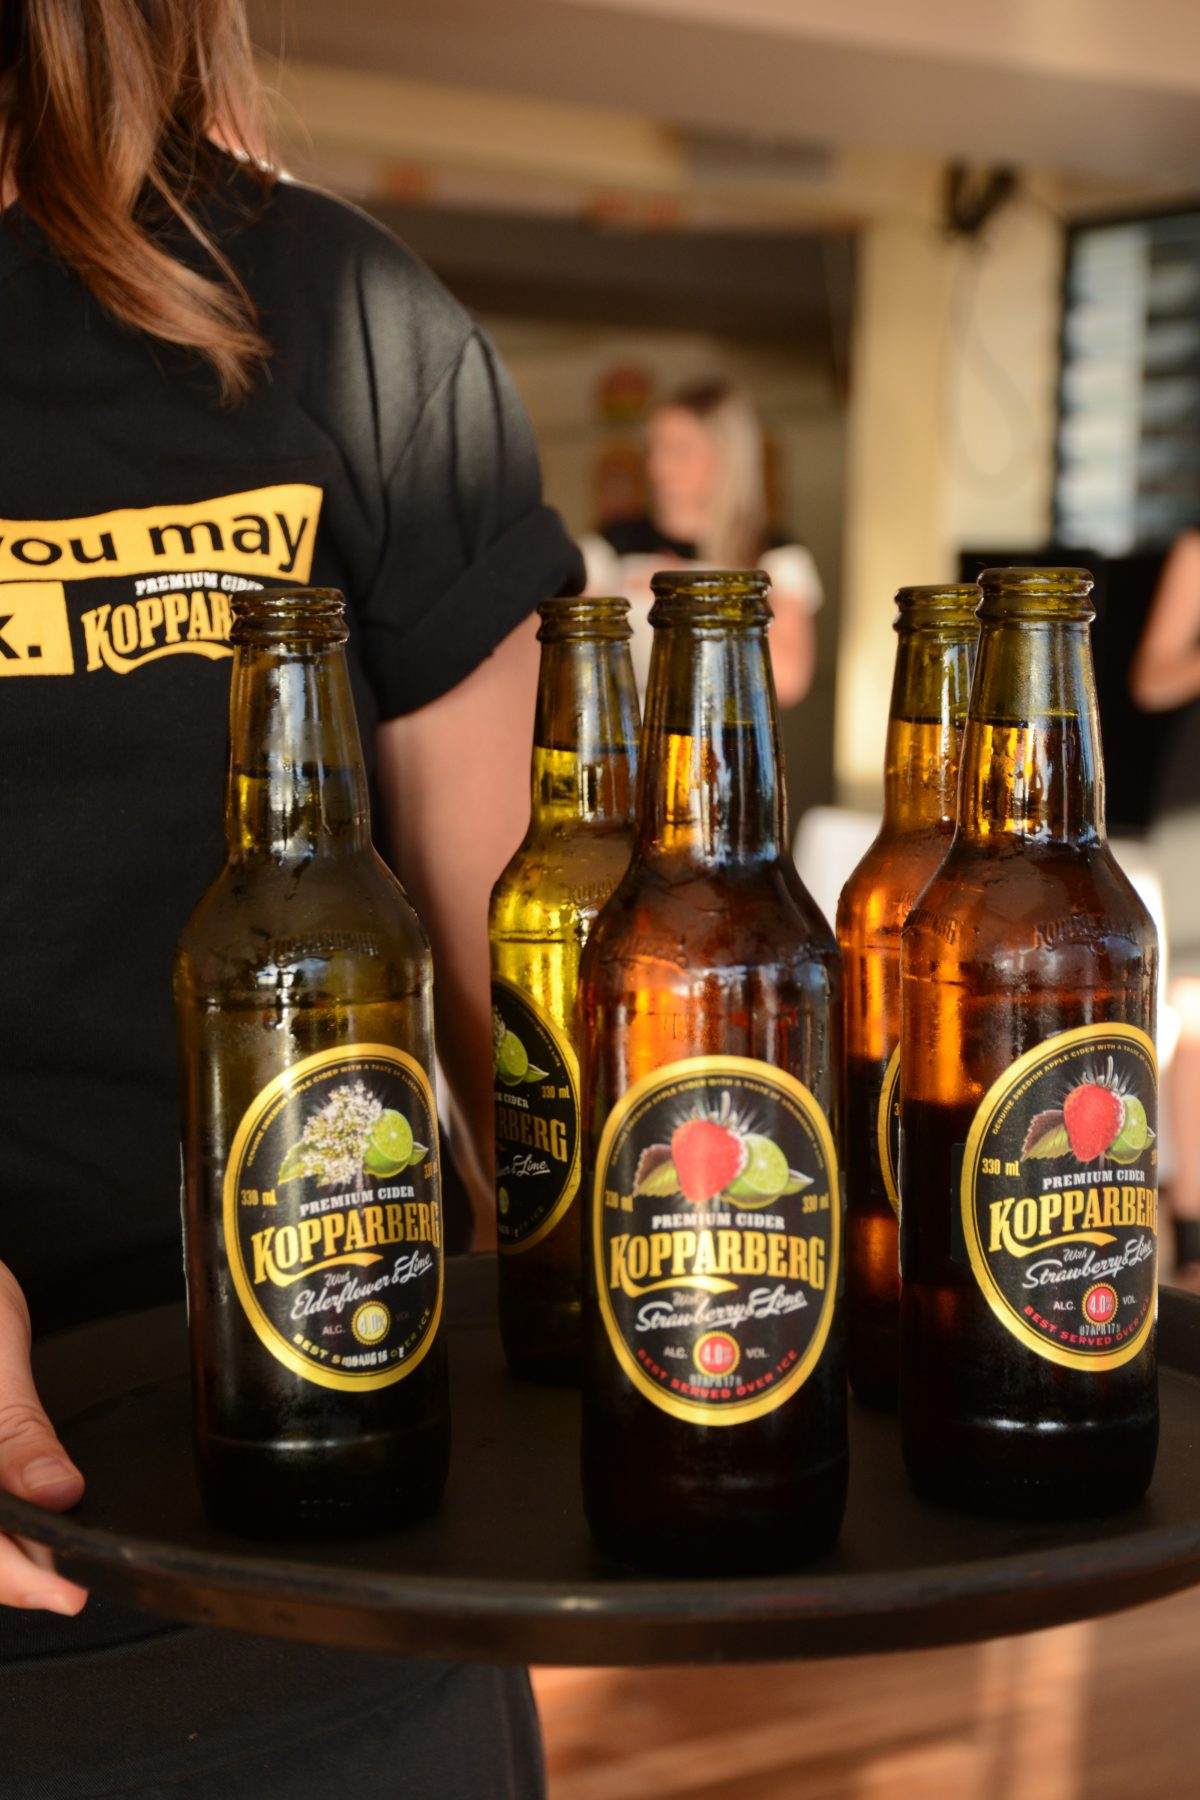 Kopparberg Elderflower & Lime Cider and Kopparberg Strawberry & LIme Cider - launched in Australia - thespiceadventuress.com